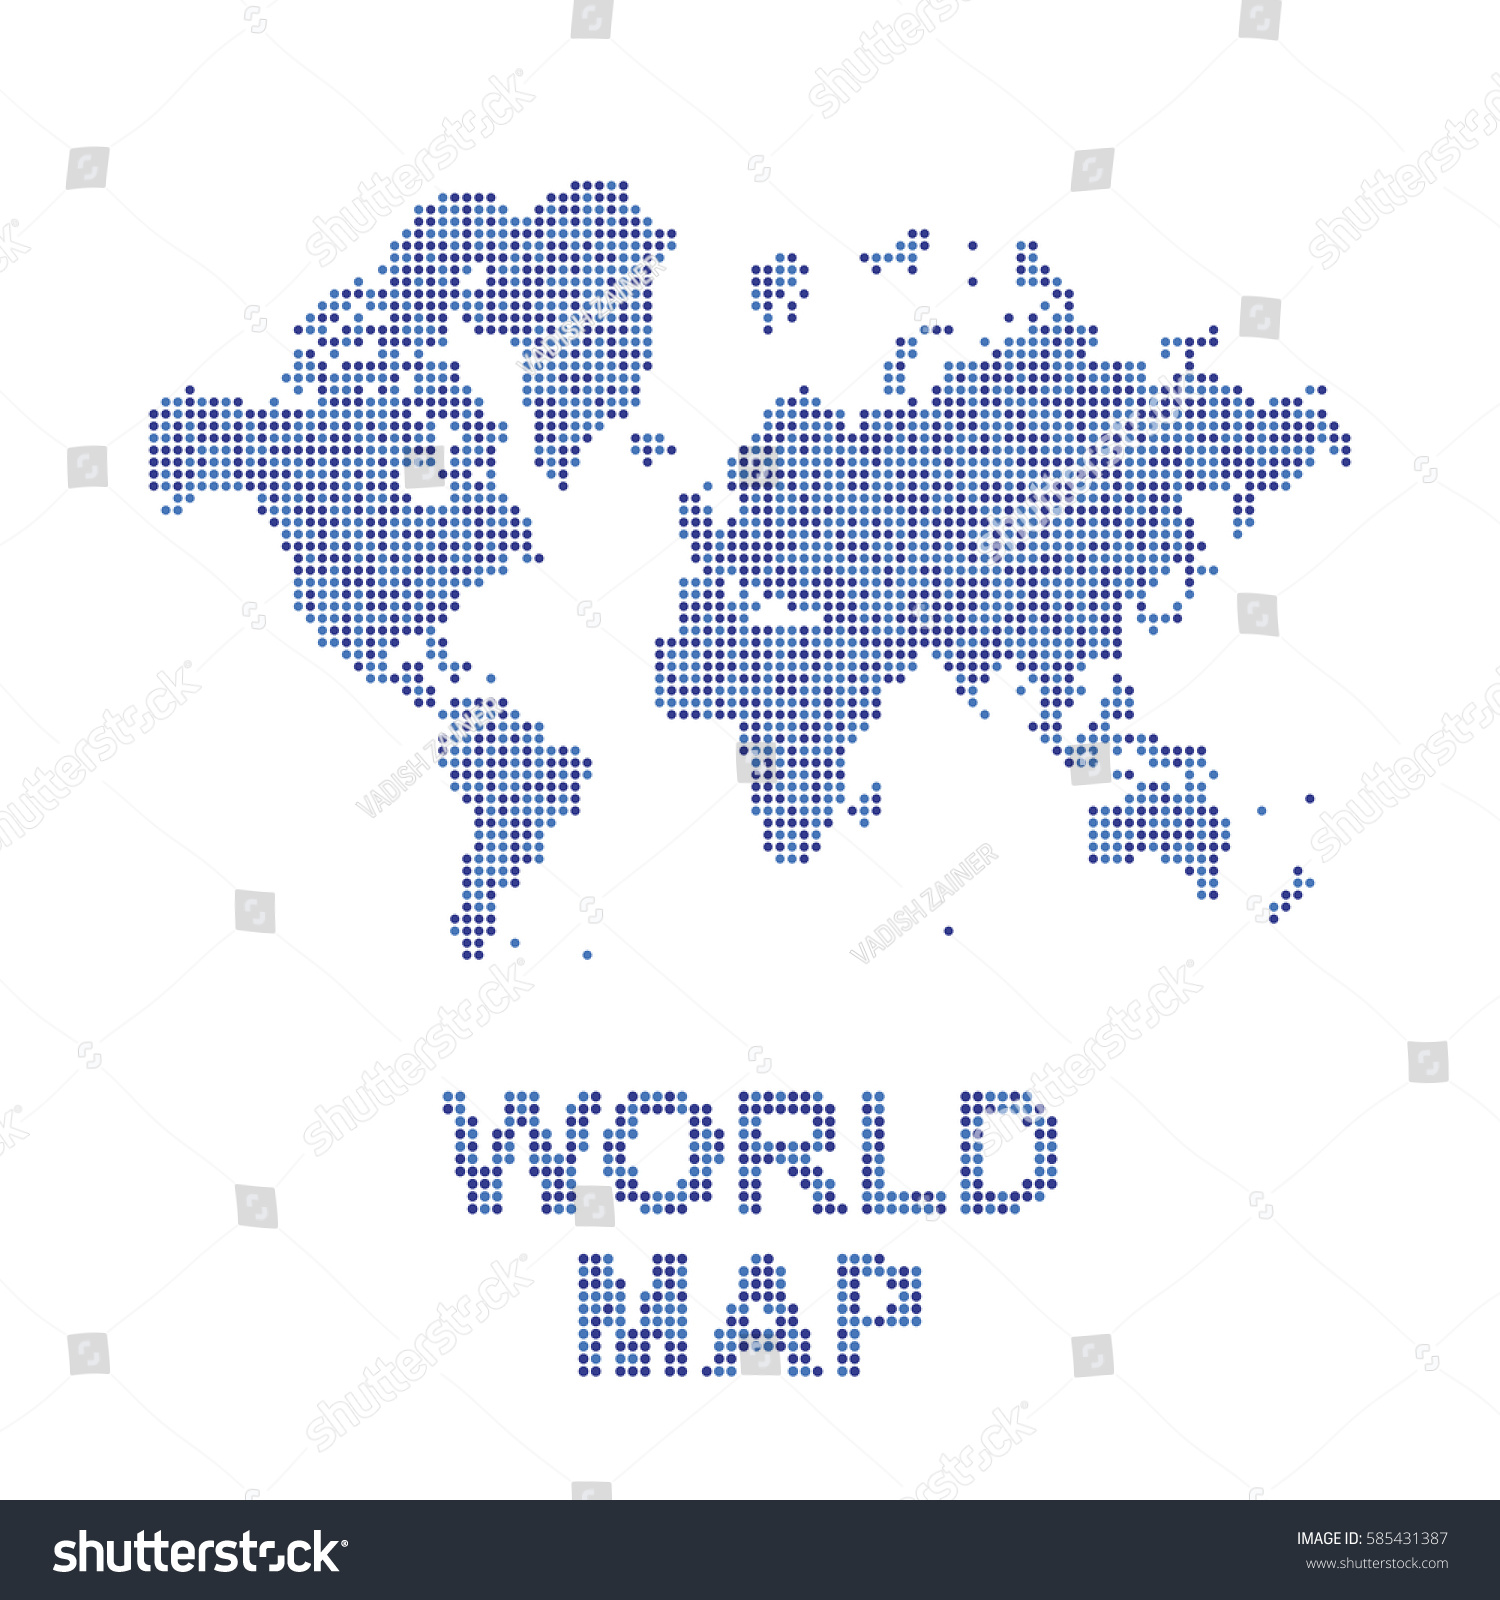 Abstract world map round dots flat stock vector 585431387 abstract world map round dots flat stock vector 585431387 shutterstock gumiabroncs Images